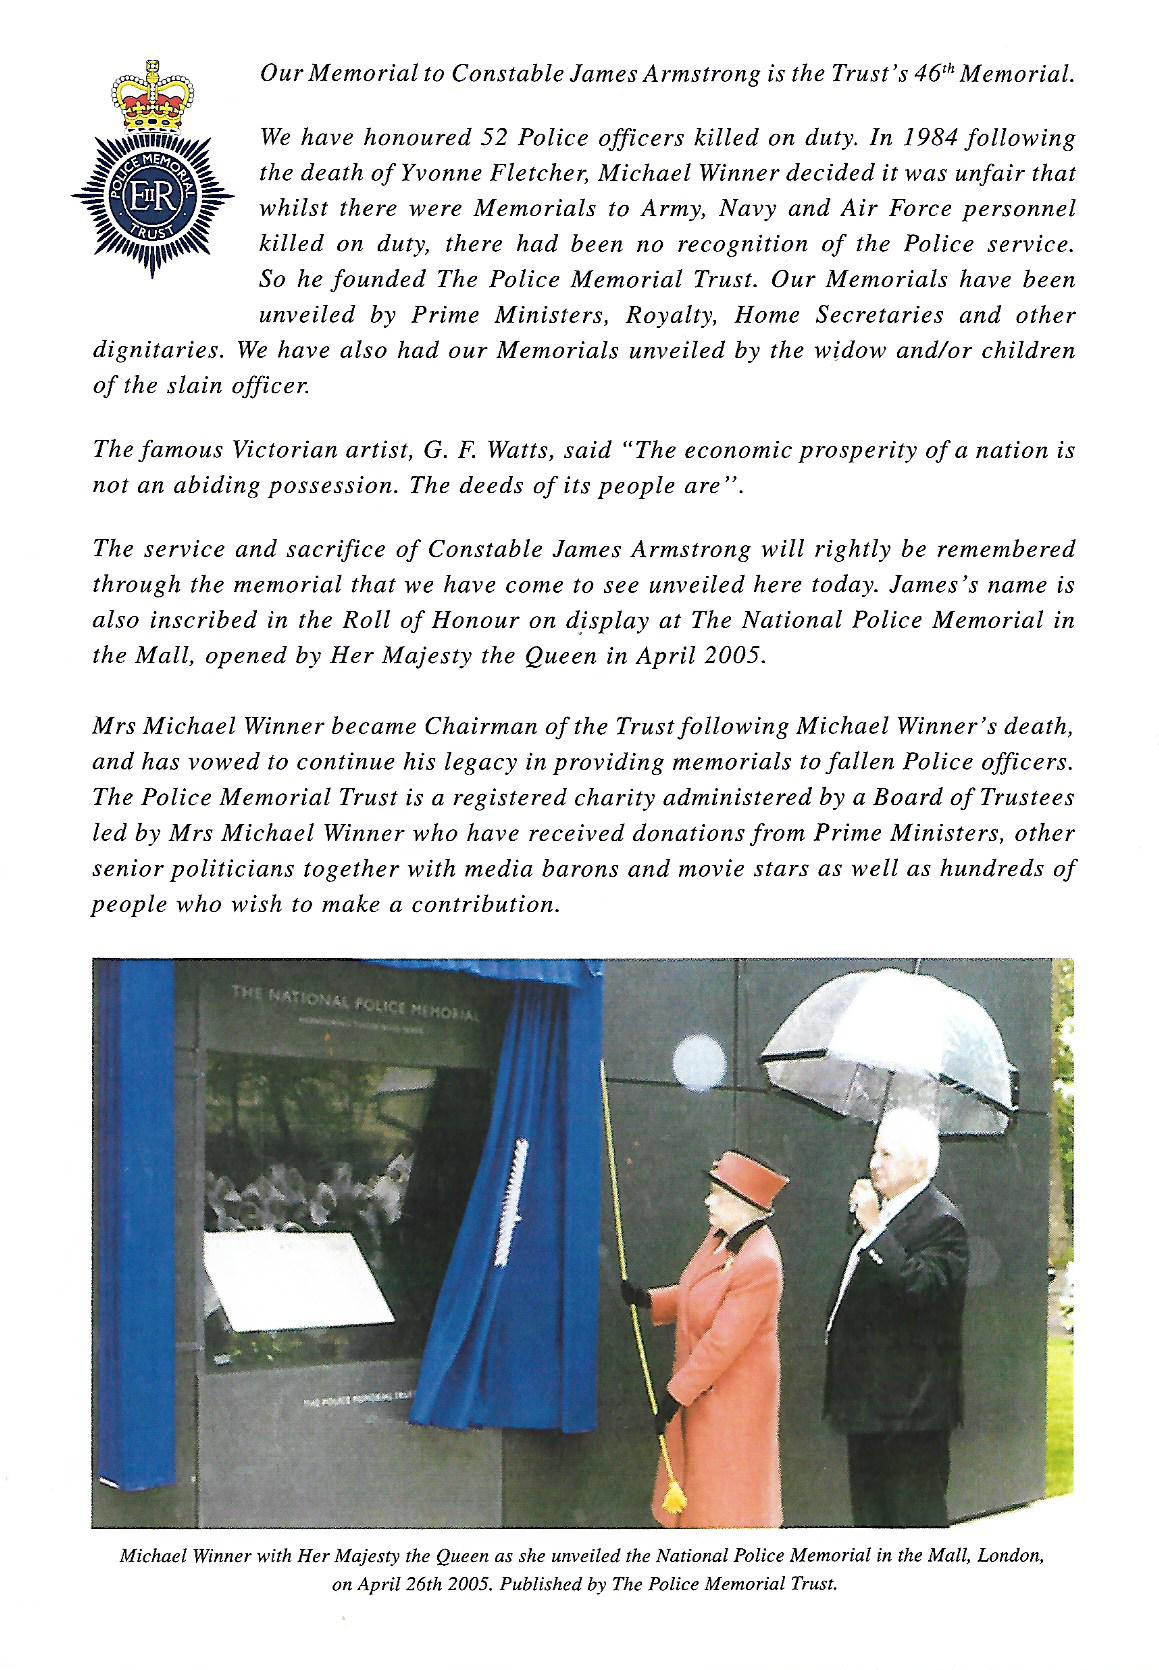 Ceremony for the unveiling of a Memorial to Constable James Armstrong programme 2